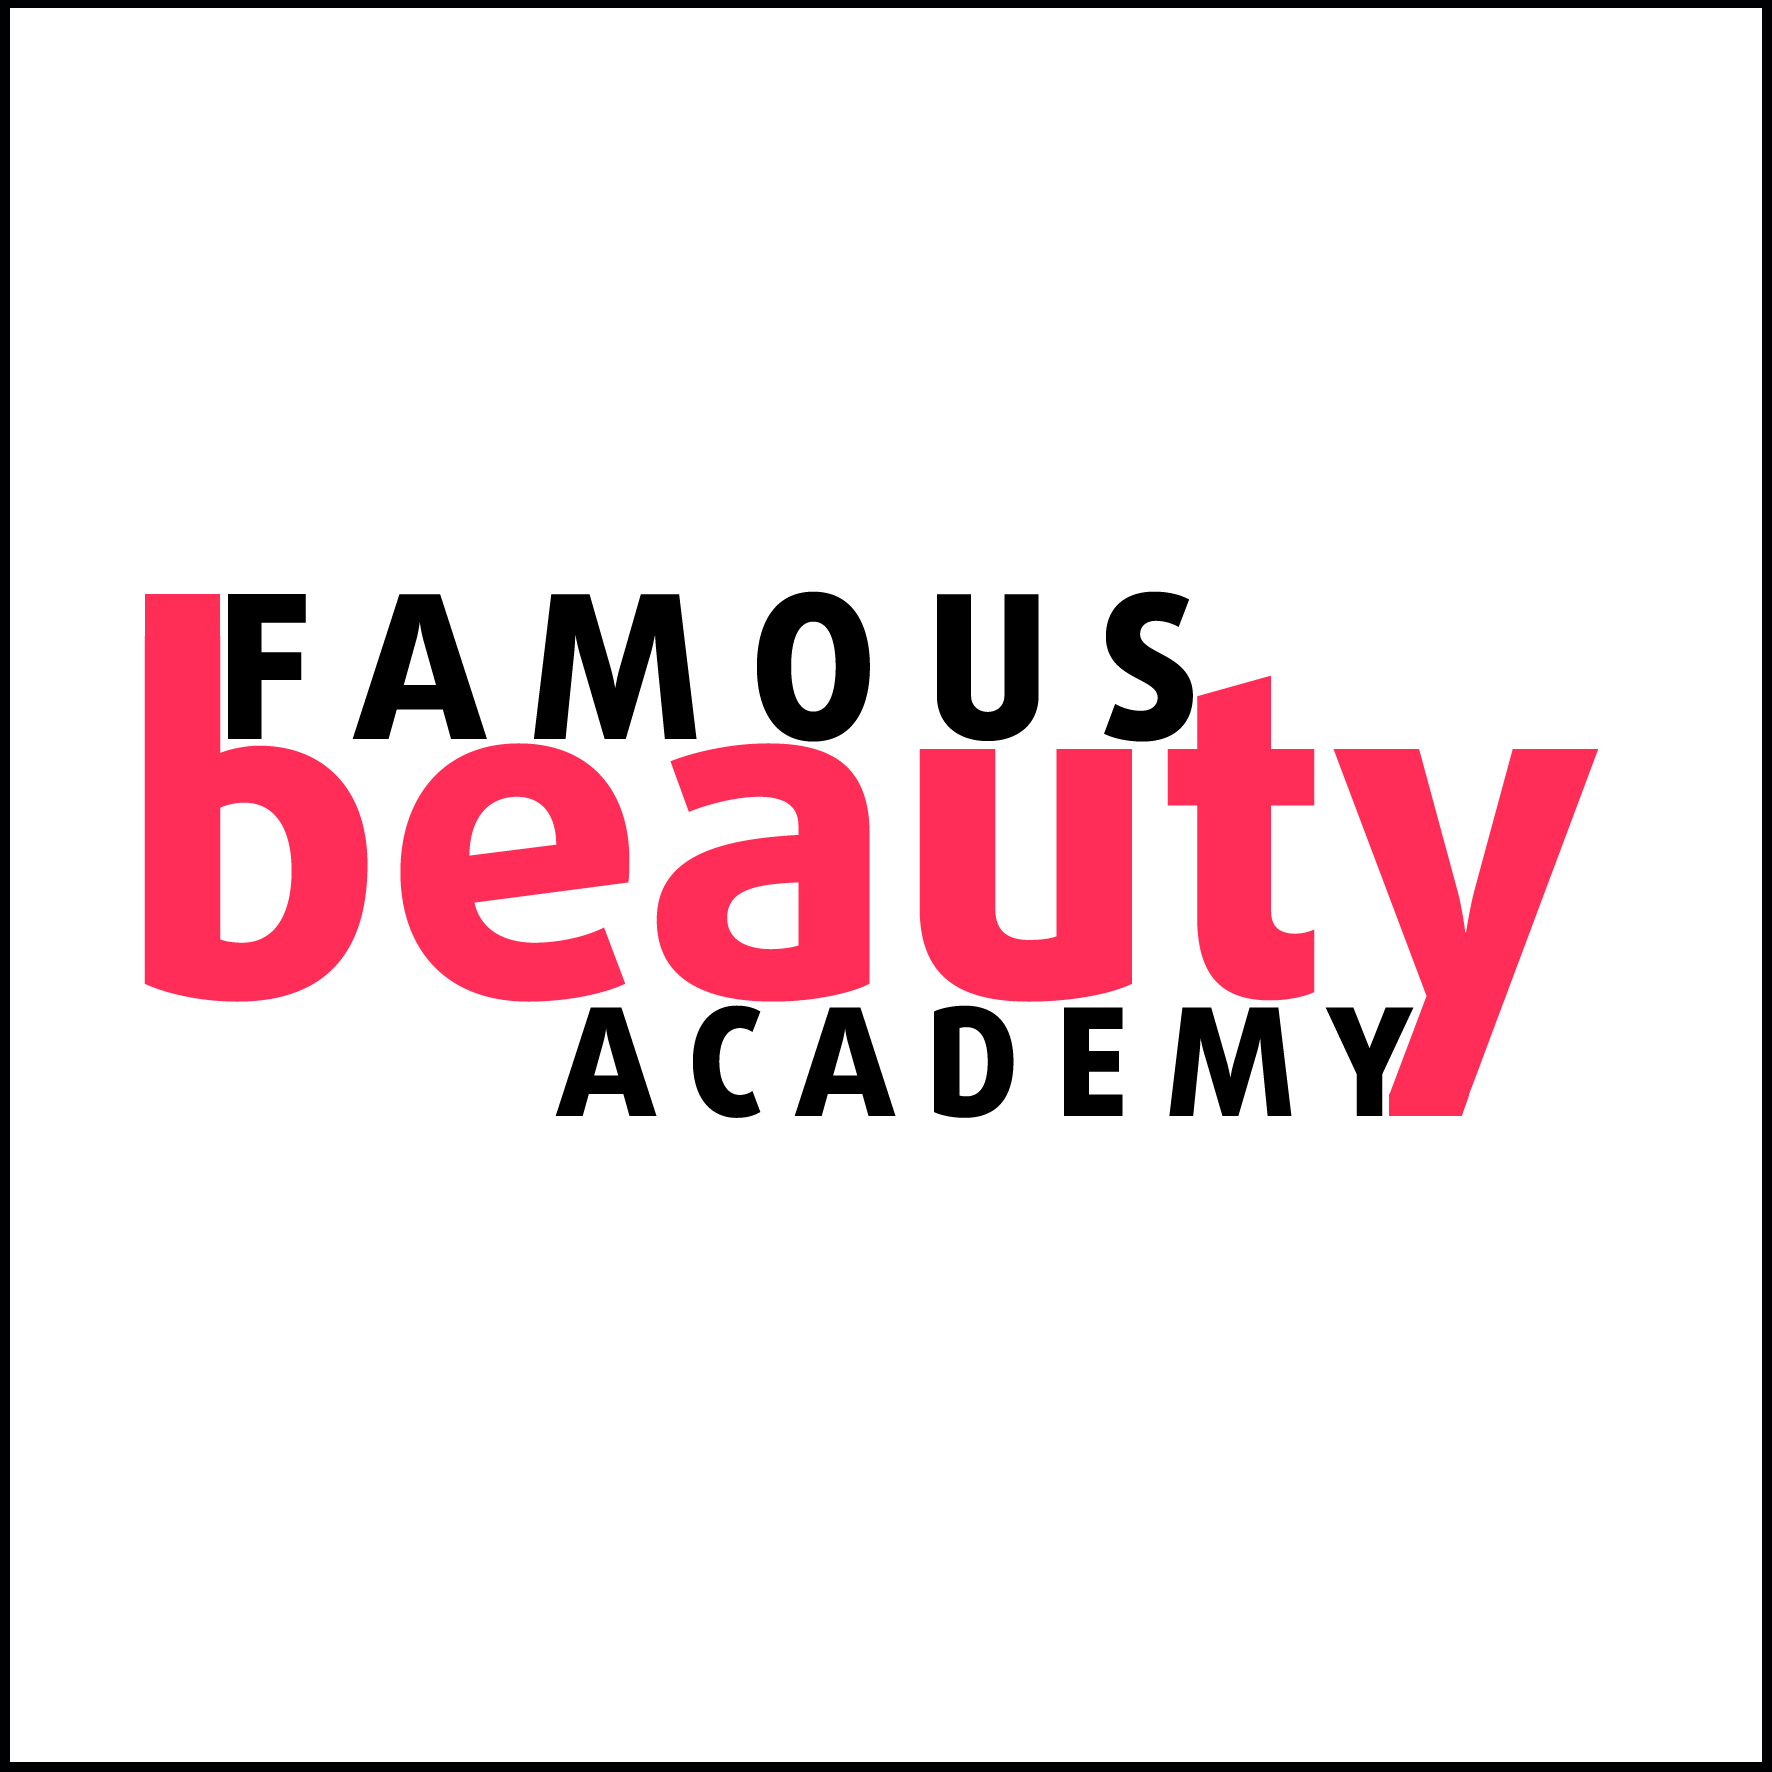 FAMOUS beauty ACADEMY